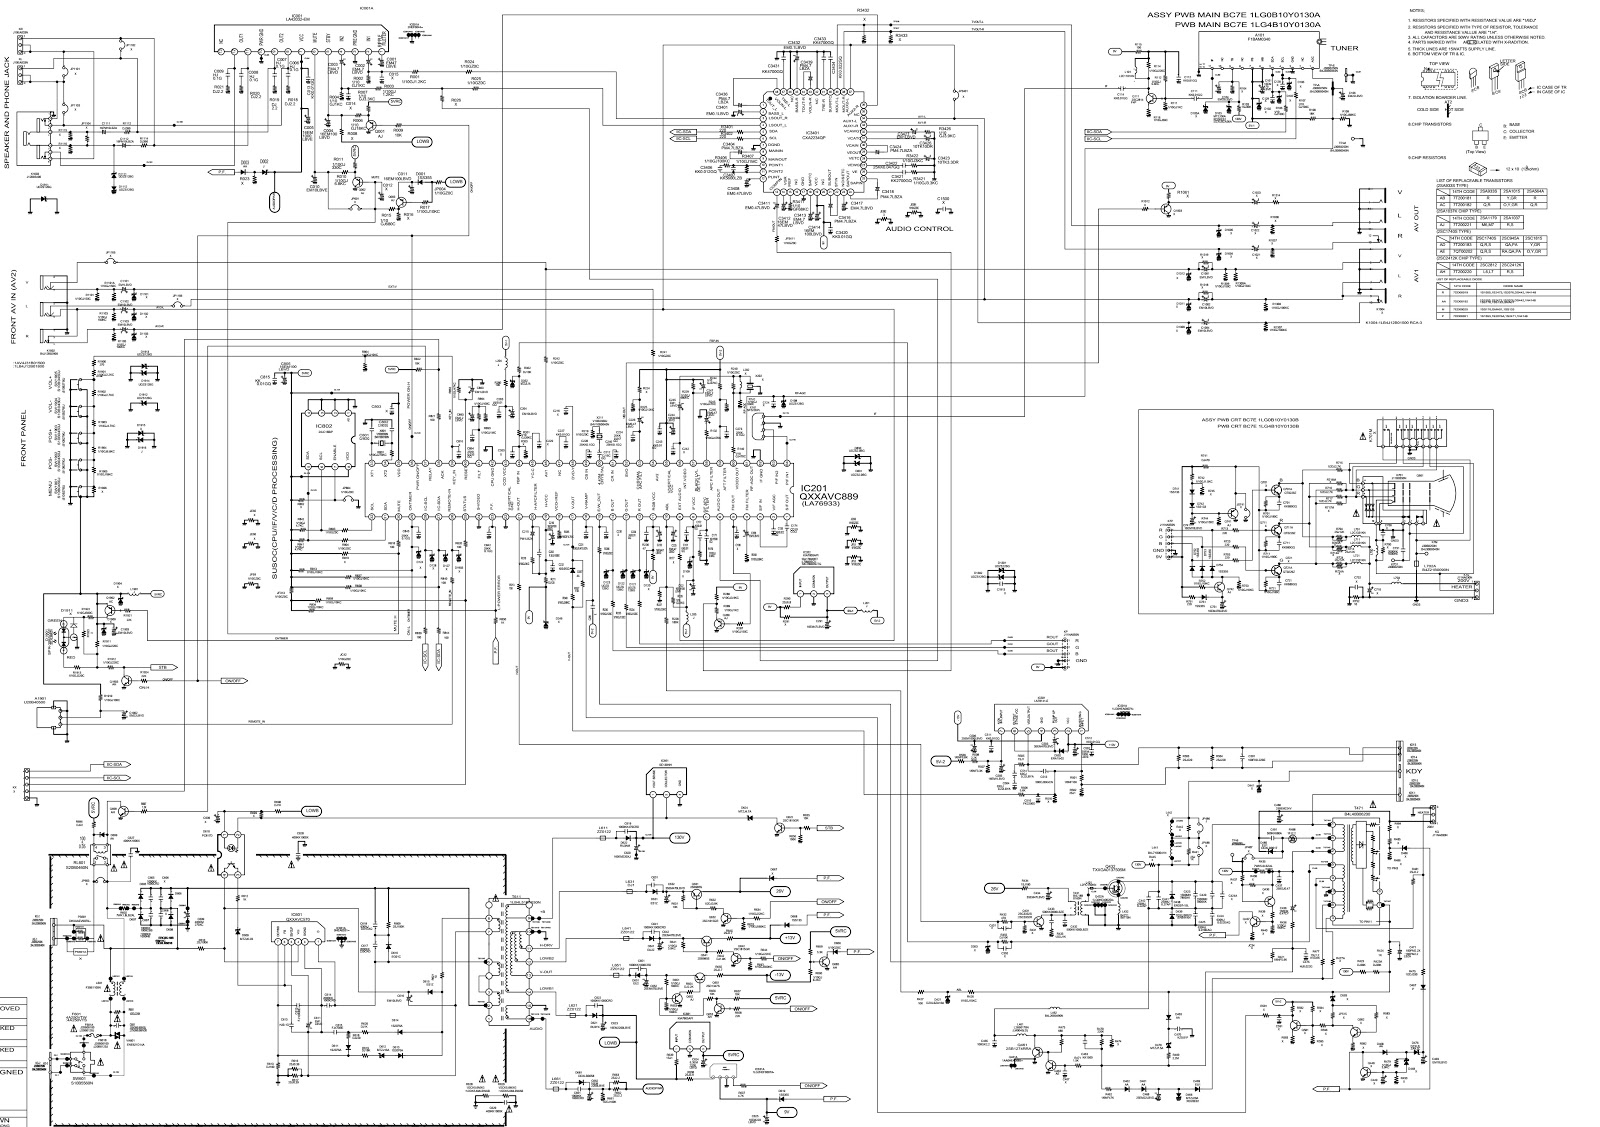 small resolution of sanyo tv circuit diagram wiring diagram third level rh 14 2 14 jacobwinterstein com wall mount tv wiring typical home wiring diagrams audio